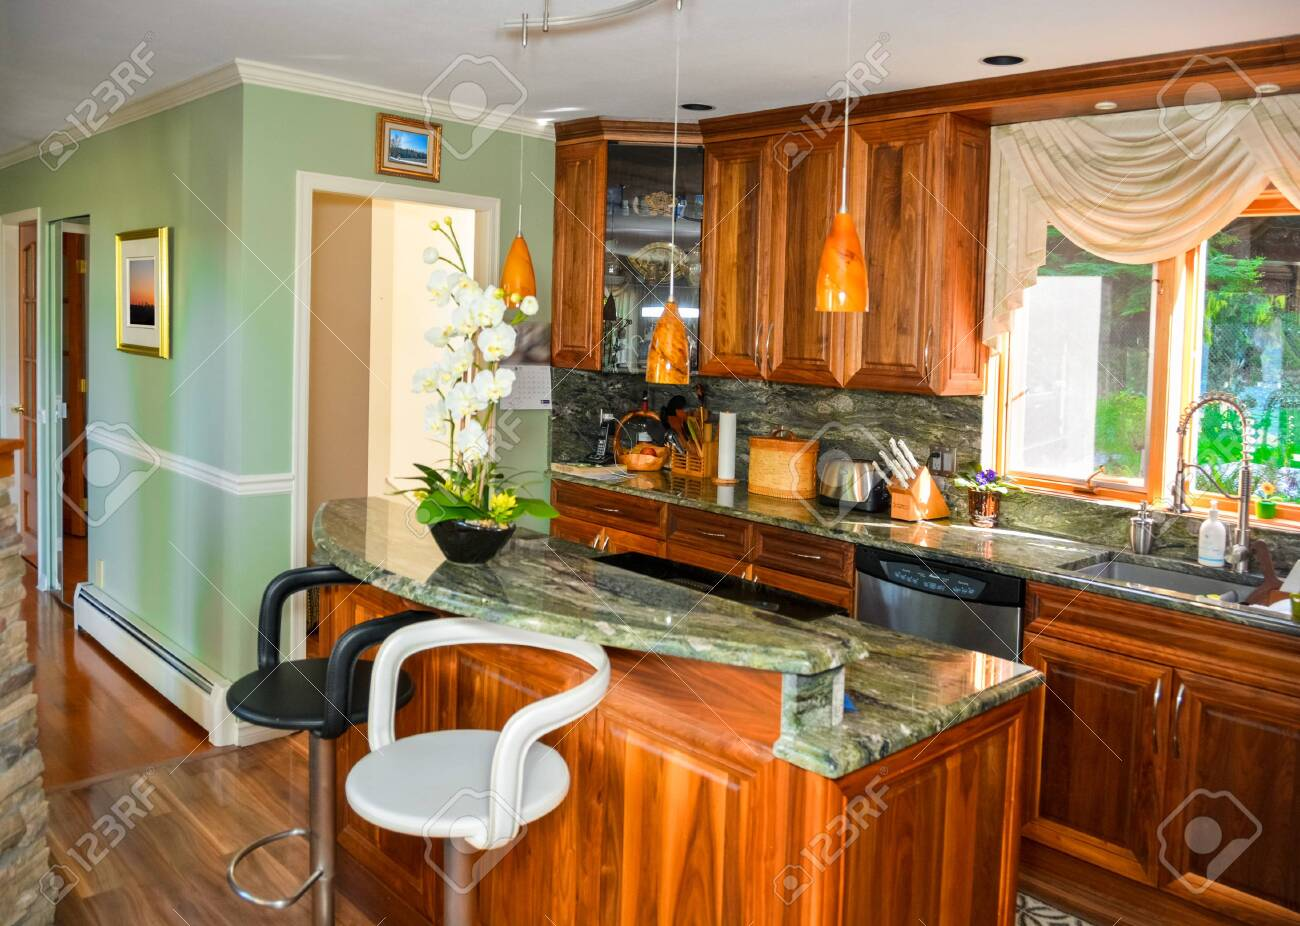 Stylish Kitchen Wooden Interior With Island Table With Two Chairs Stock Photo Picture And Royalty Free Image Image 133170594